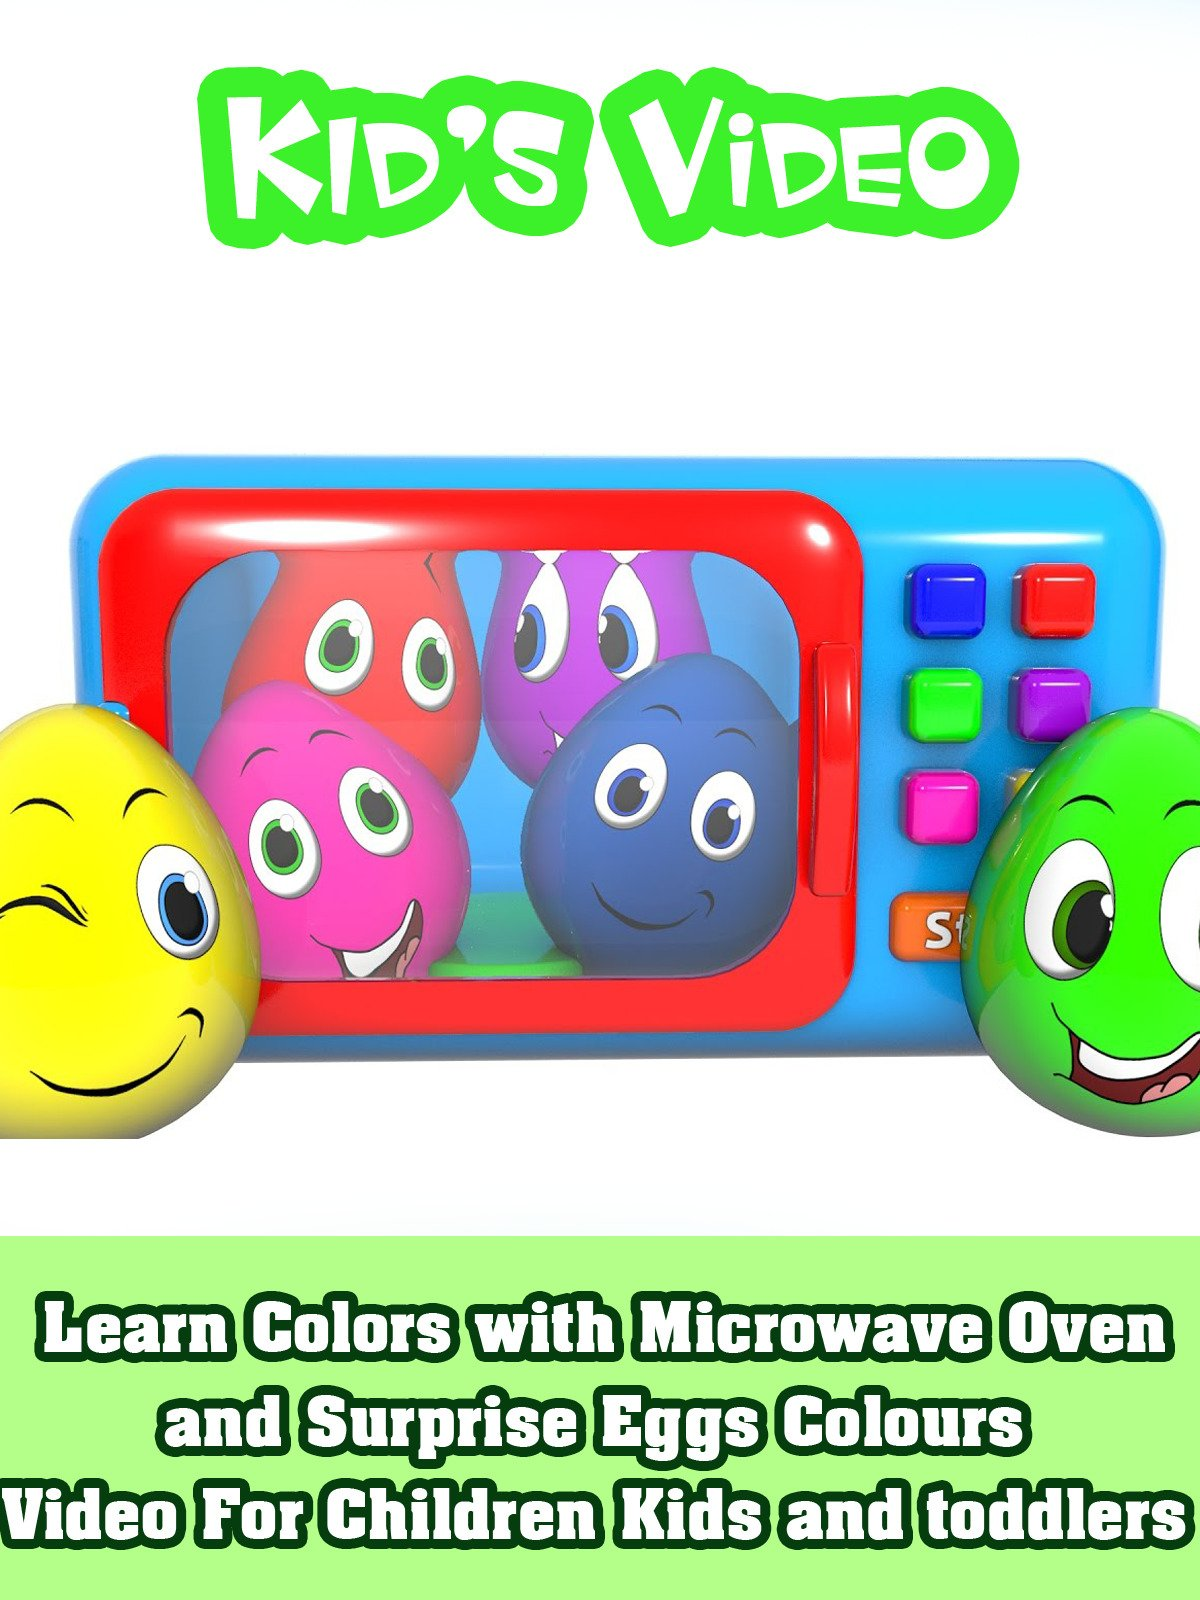 Learn Colors with Microwave Oven and Surprise Eggs Colours Video For Children Kids and Toddlers on Amazon Prime Instant Video UK